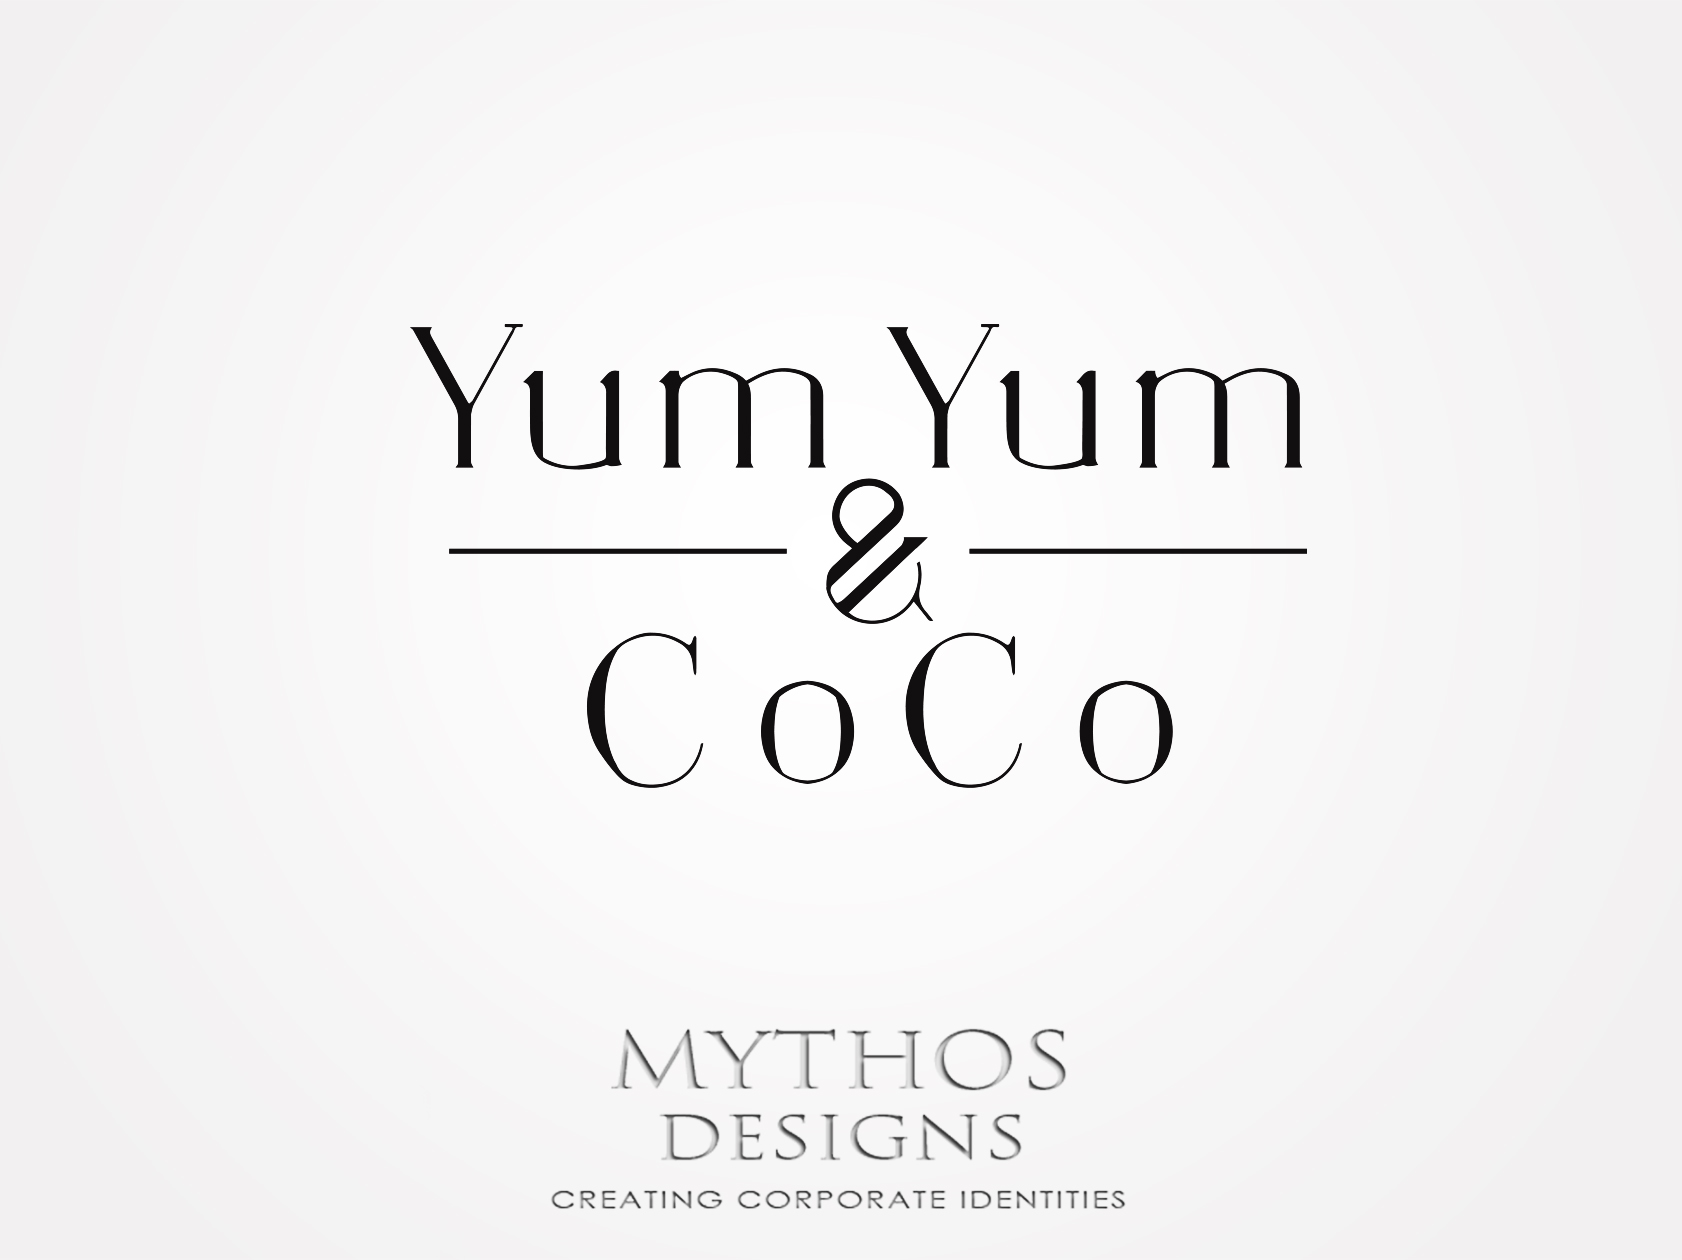 Logo Design by Mythos Designs - Entry No. 6 in the Logo Design Contest Logo Design for YumYum & CoCo.